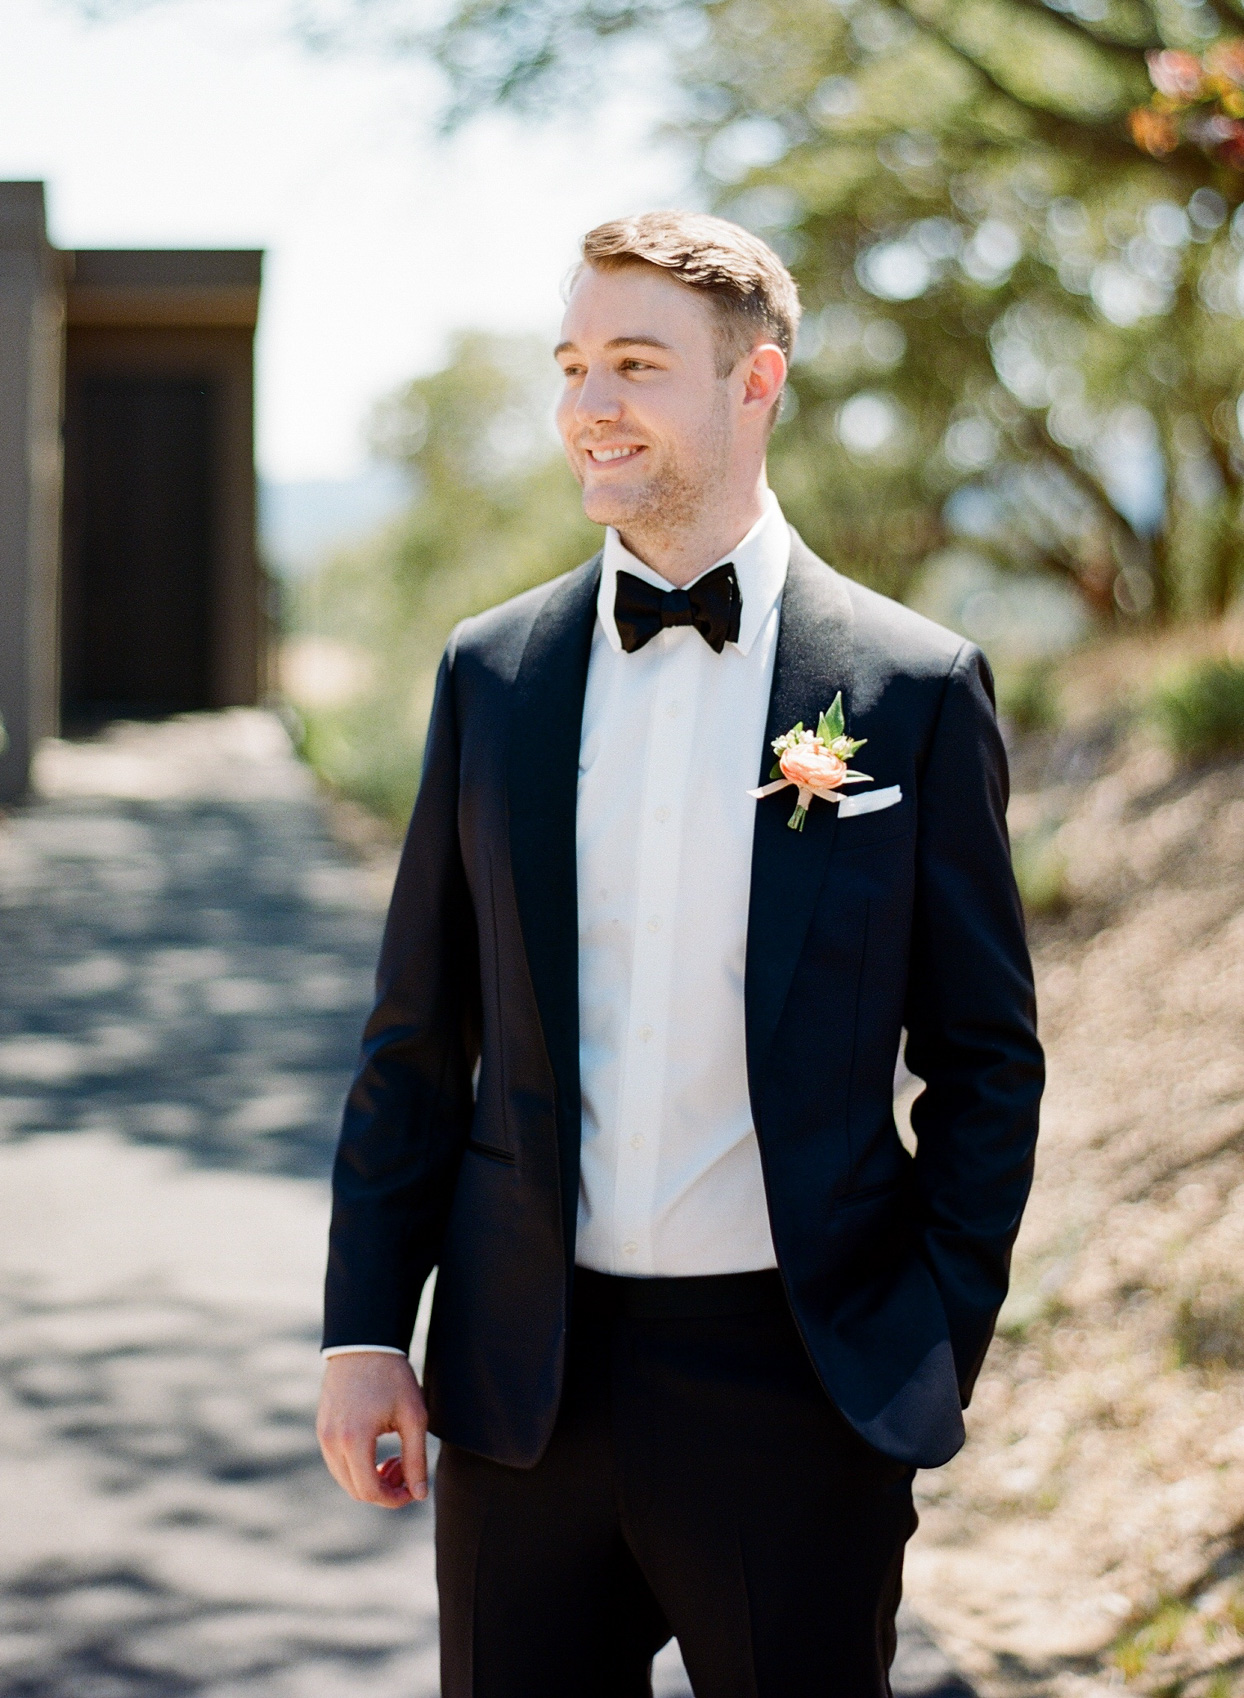 groom in black suit with pale pink boutonniere